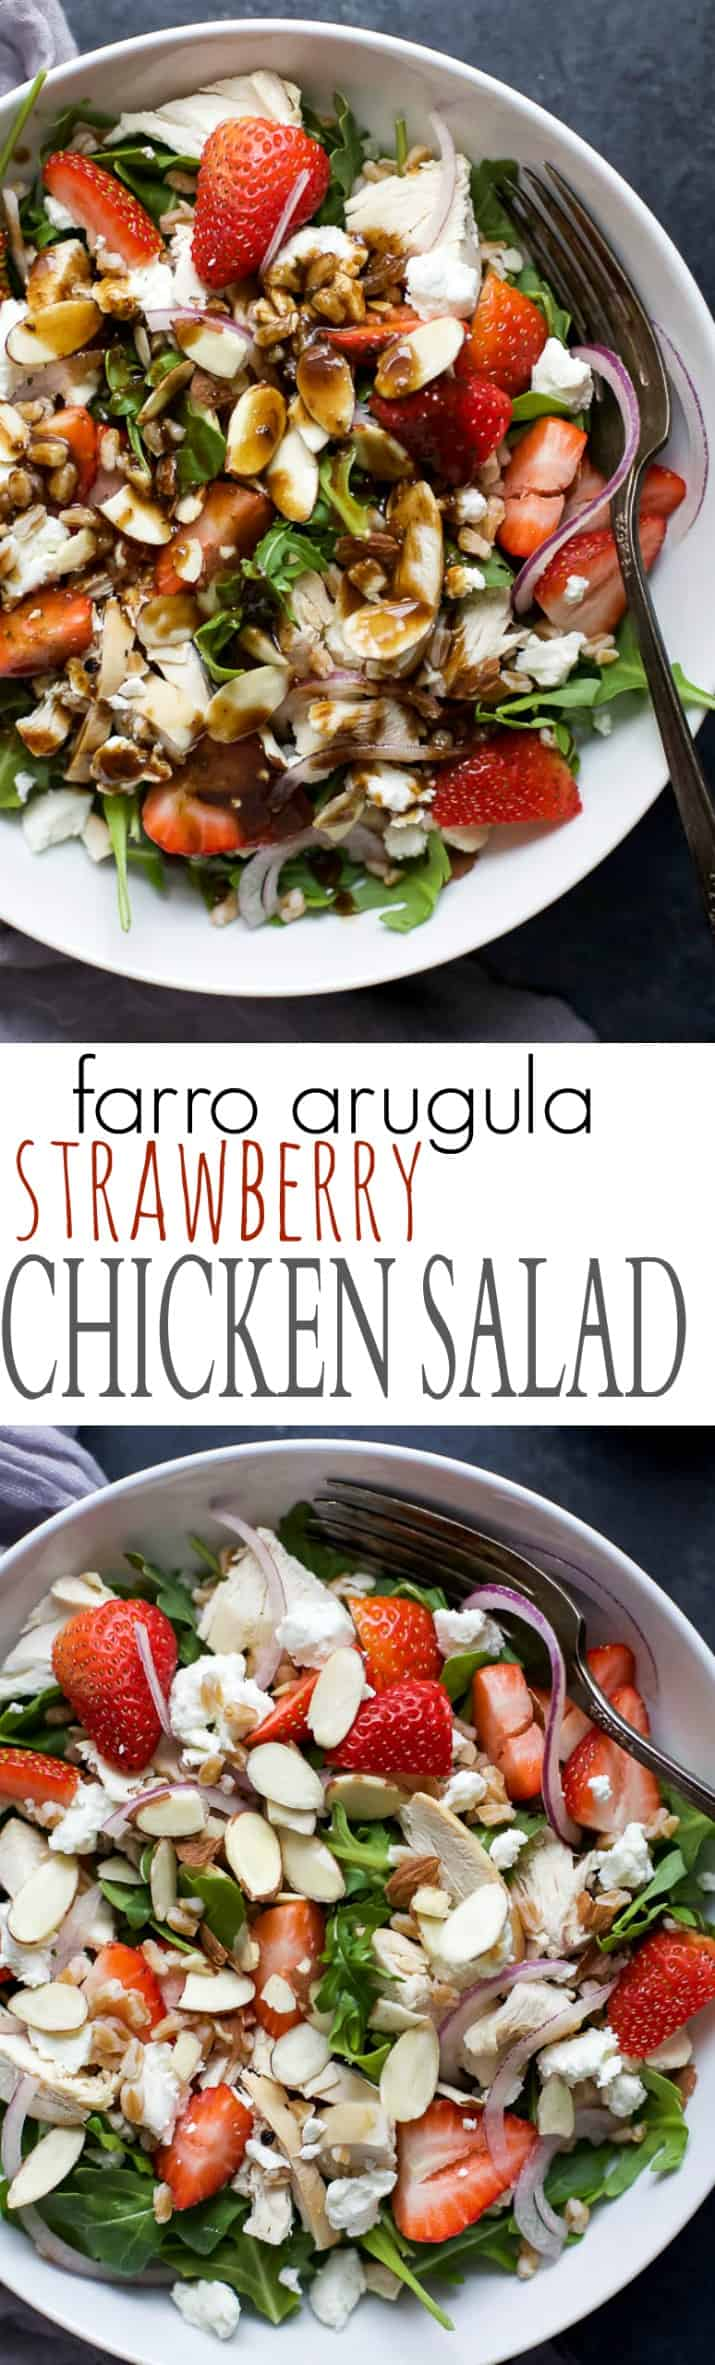 Recipe collage for Farro Arugula Strawberry Chicken Salad